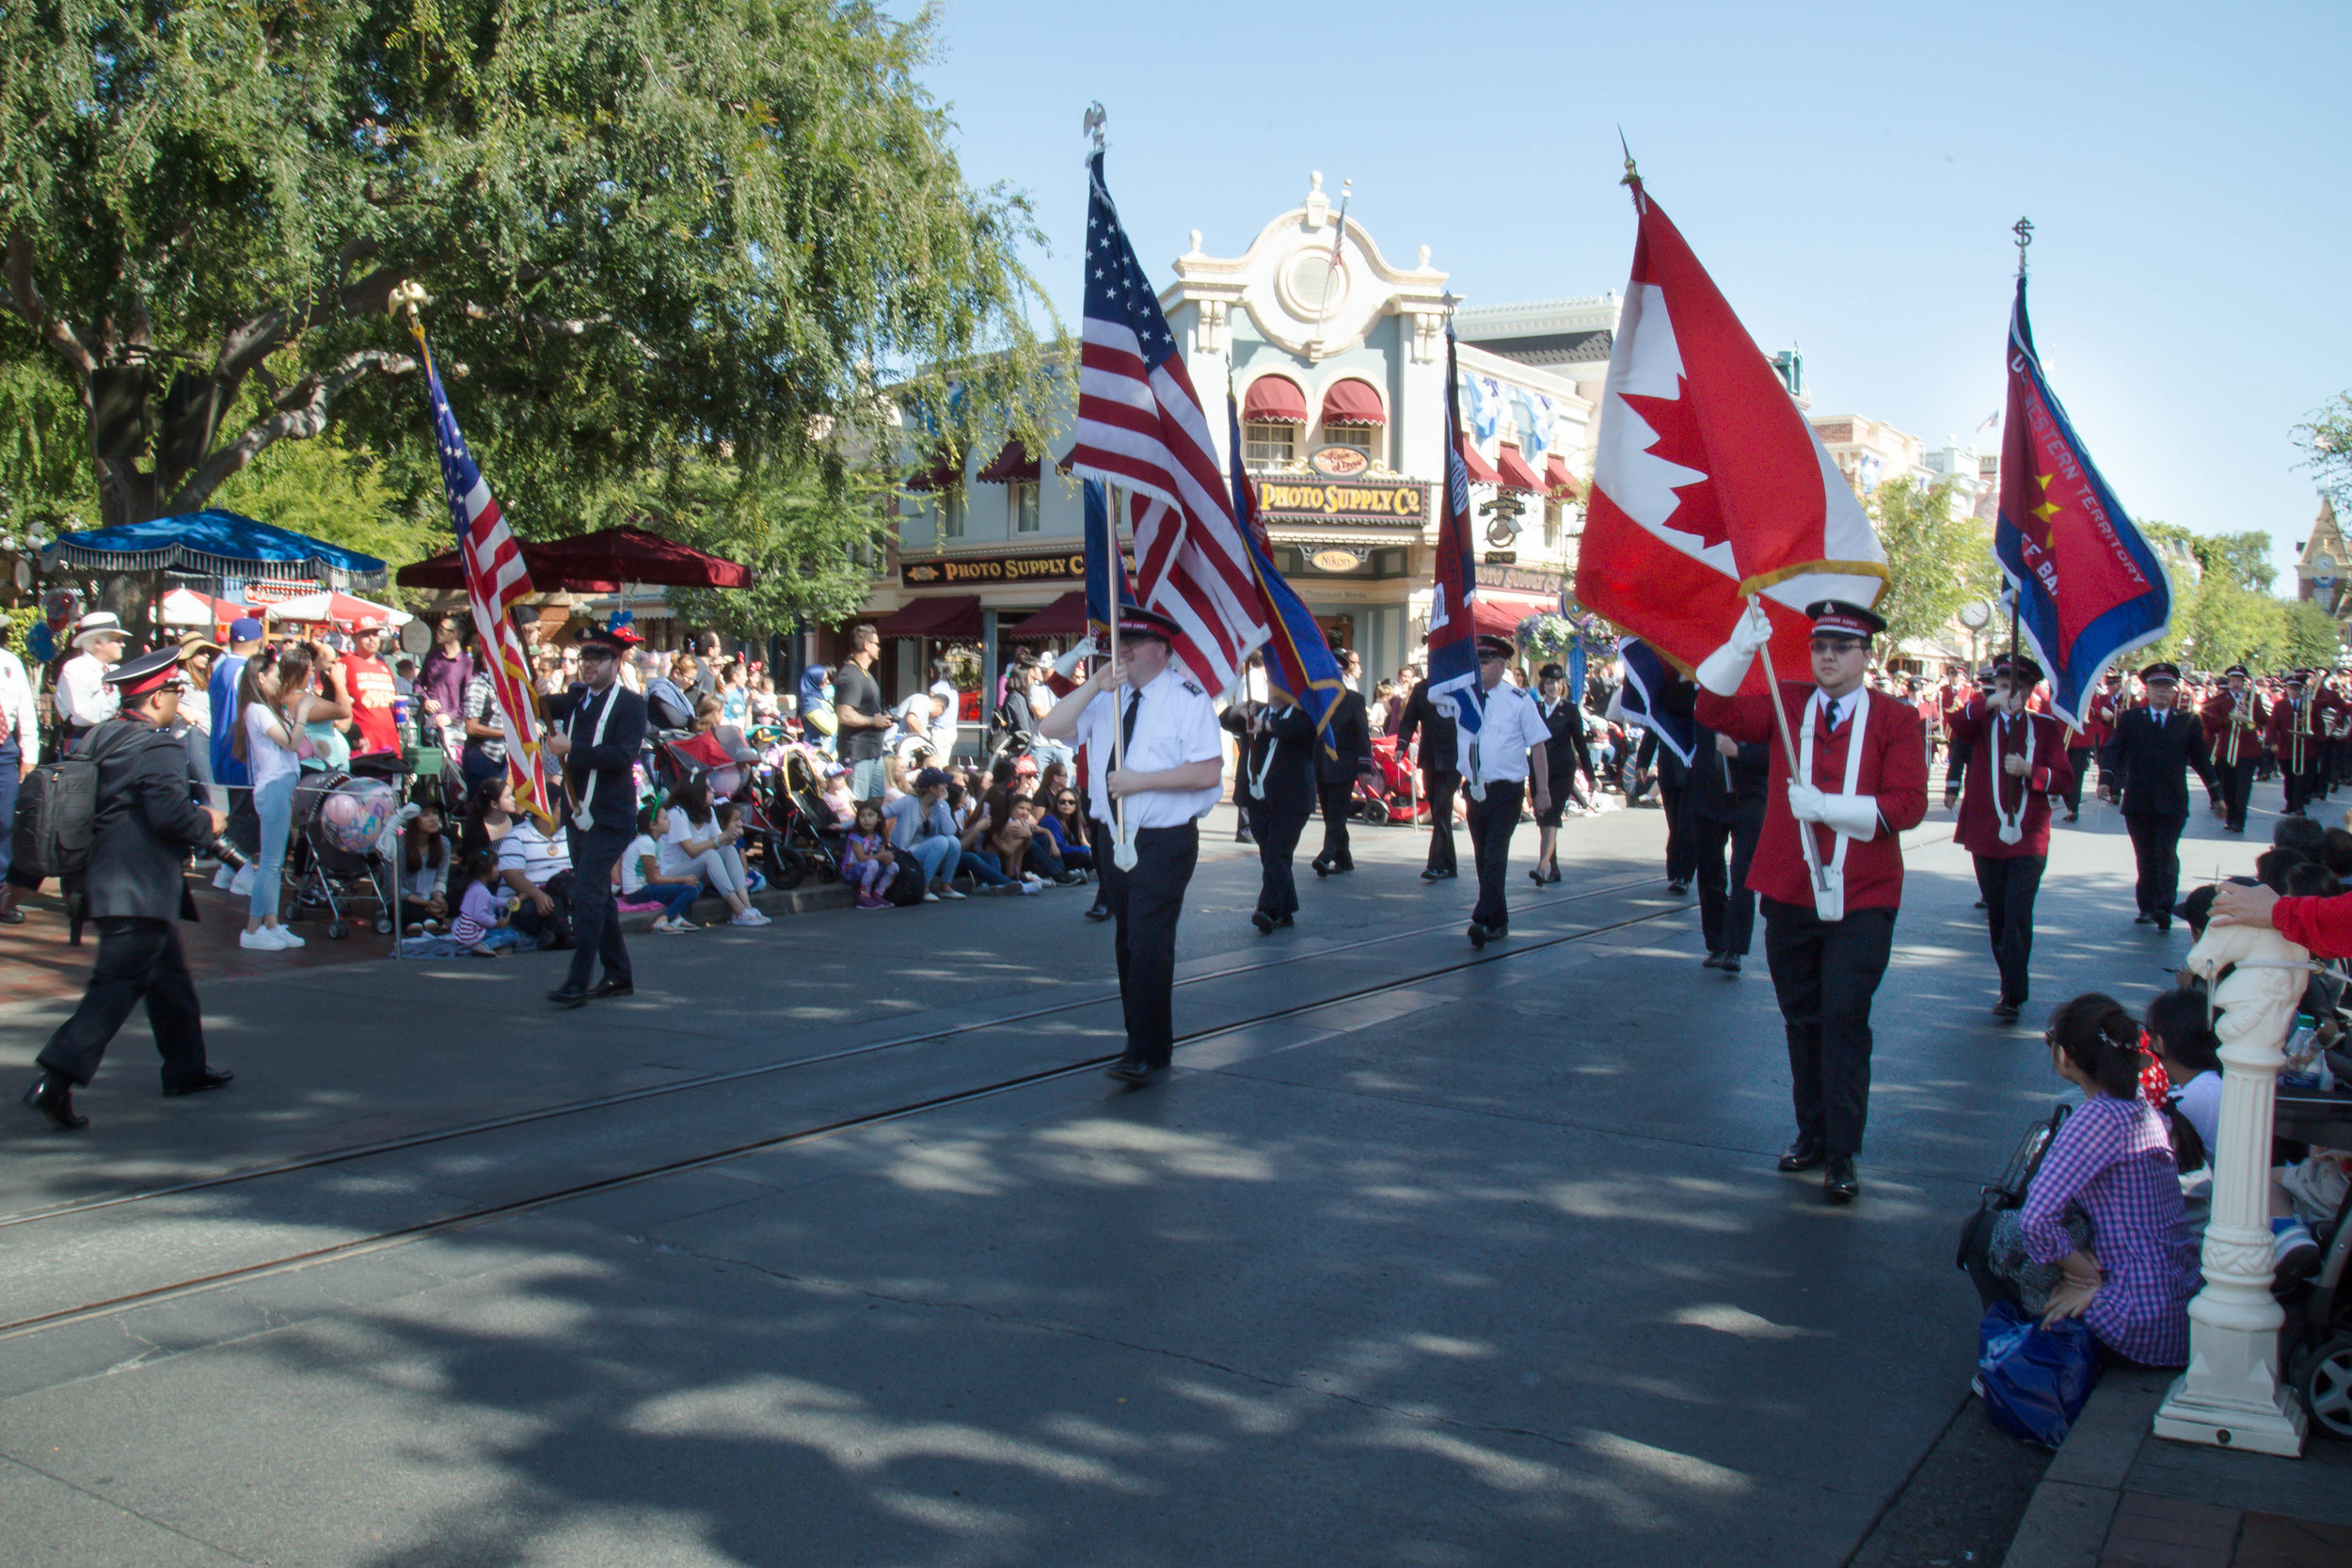 On the march at Disneyland